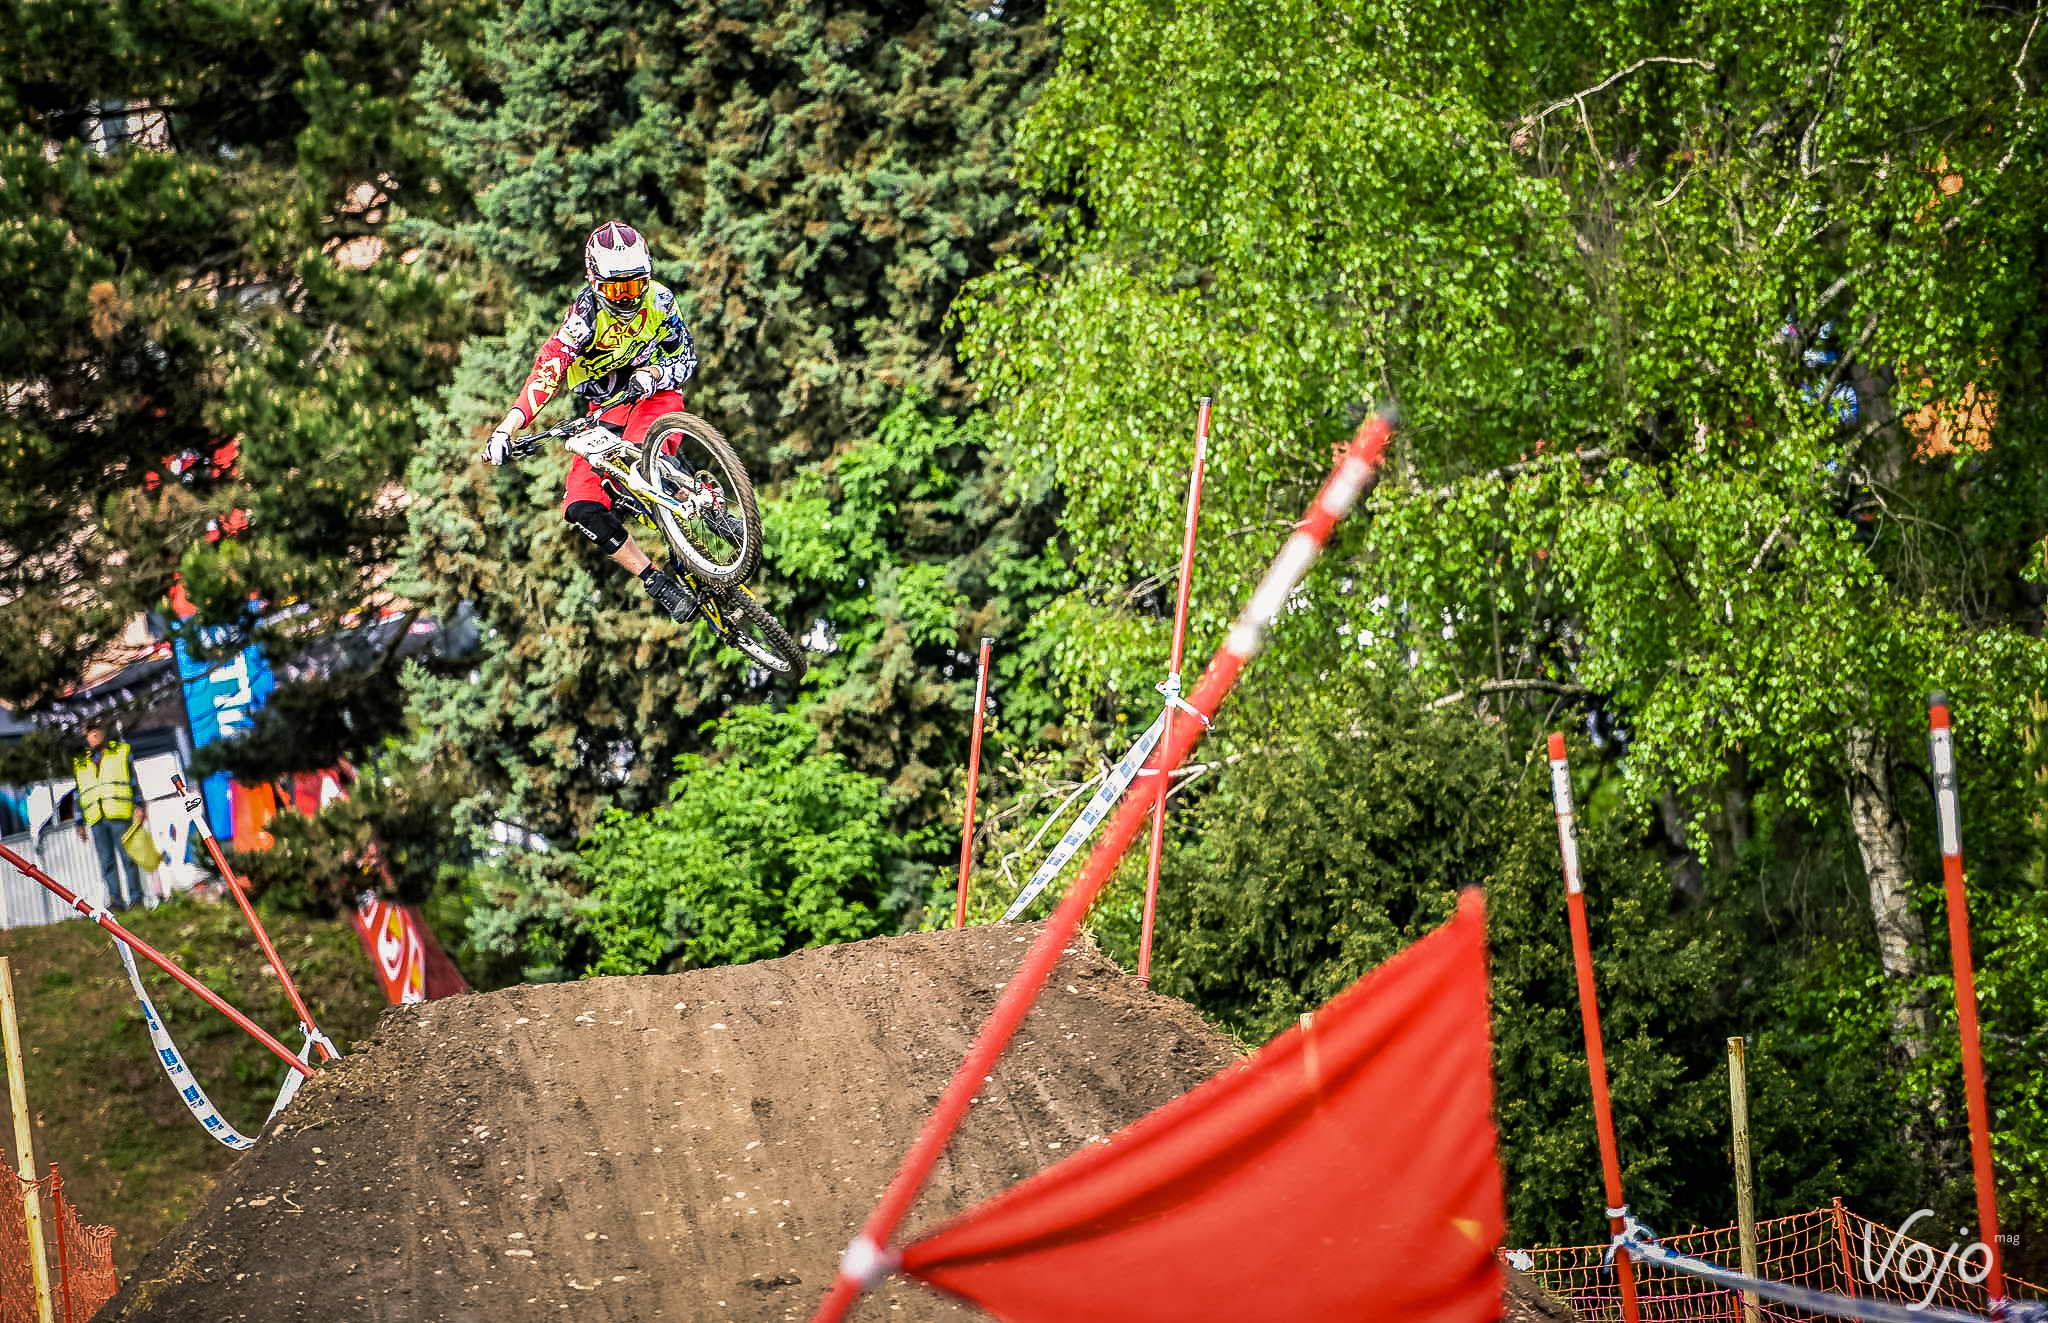 Coupe-France-DH_Lyon_LaSarra-copyright-Romain-Laurent-VojoMag-2